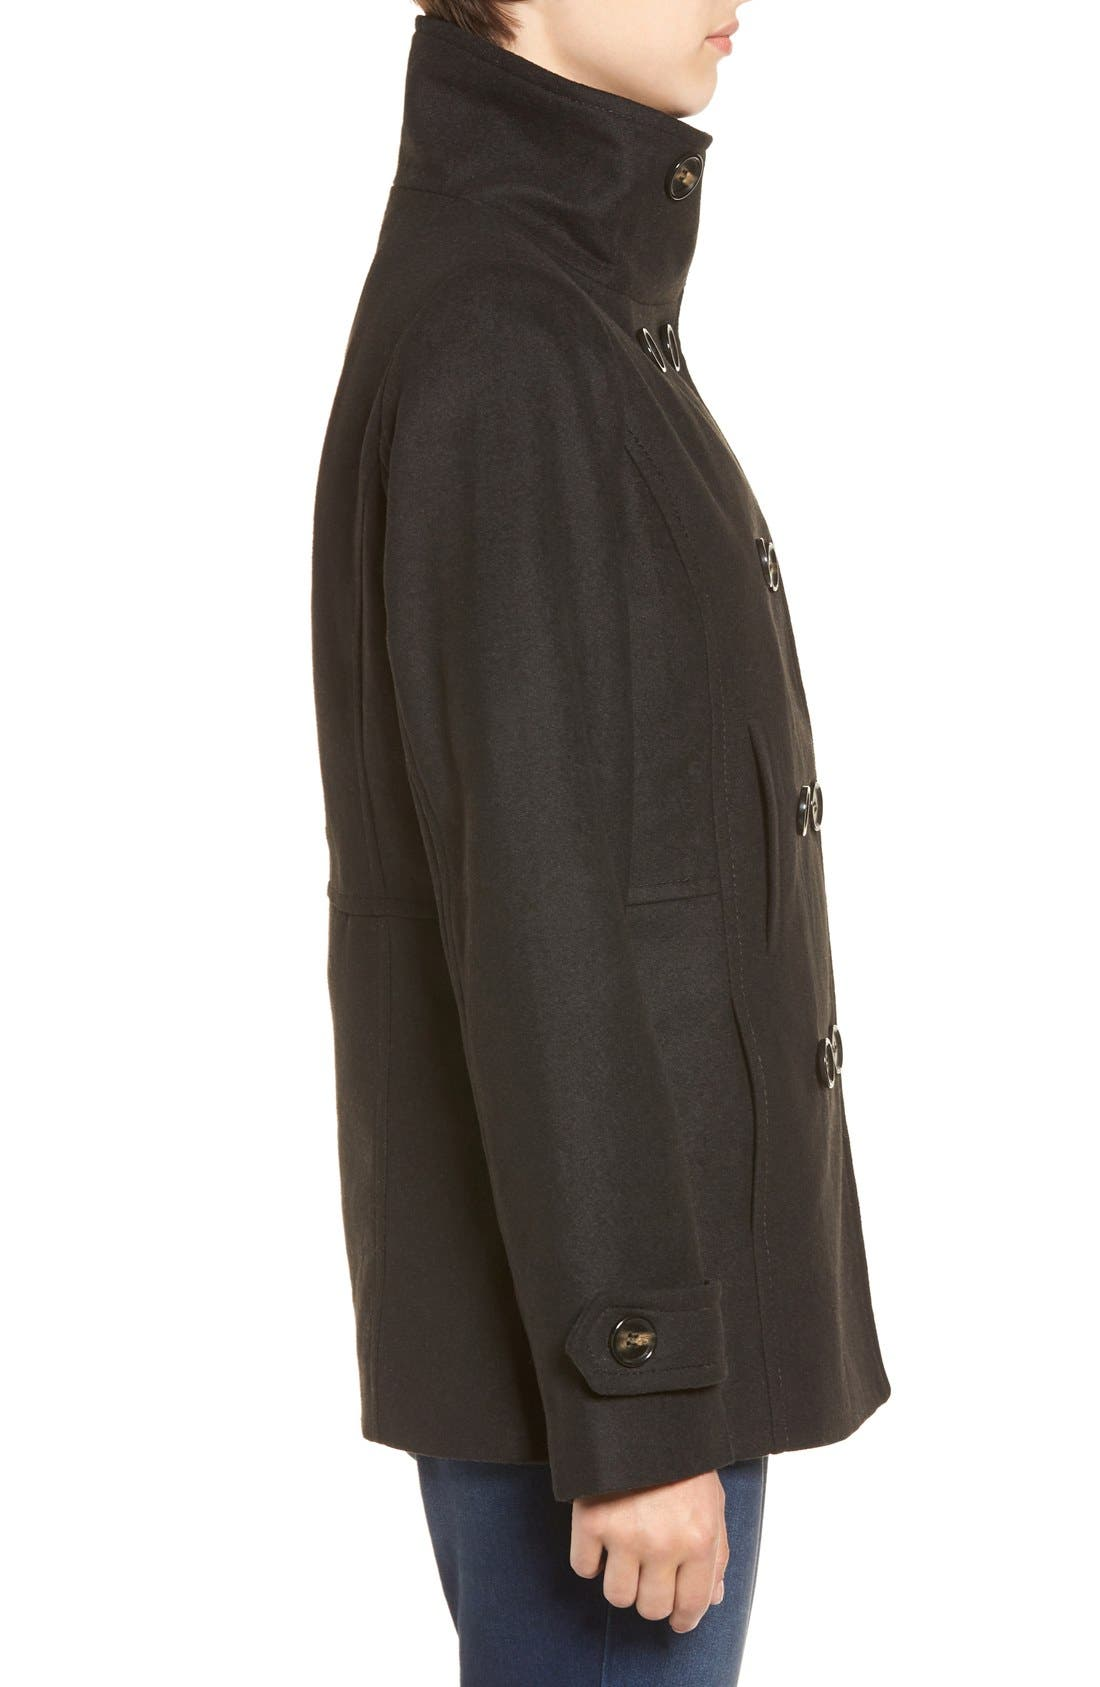 THREAD & SUPPLY,                             Double Breasted Peacoat,                             Alternate thumbnail 6, color,                             BLACK